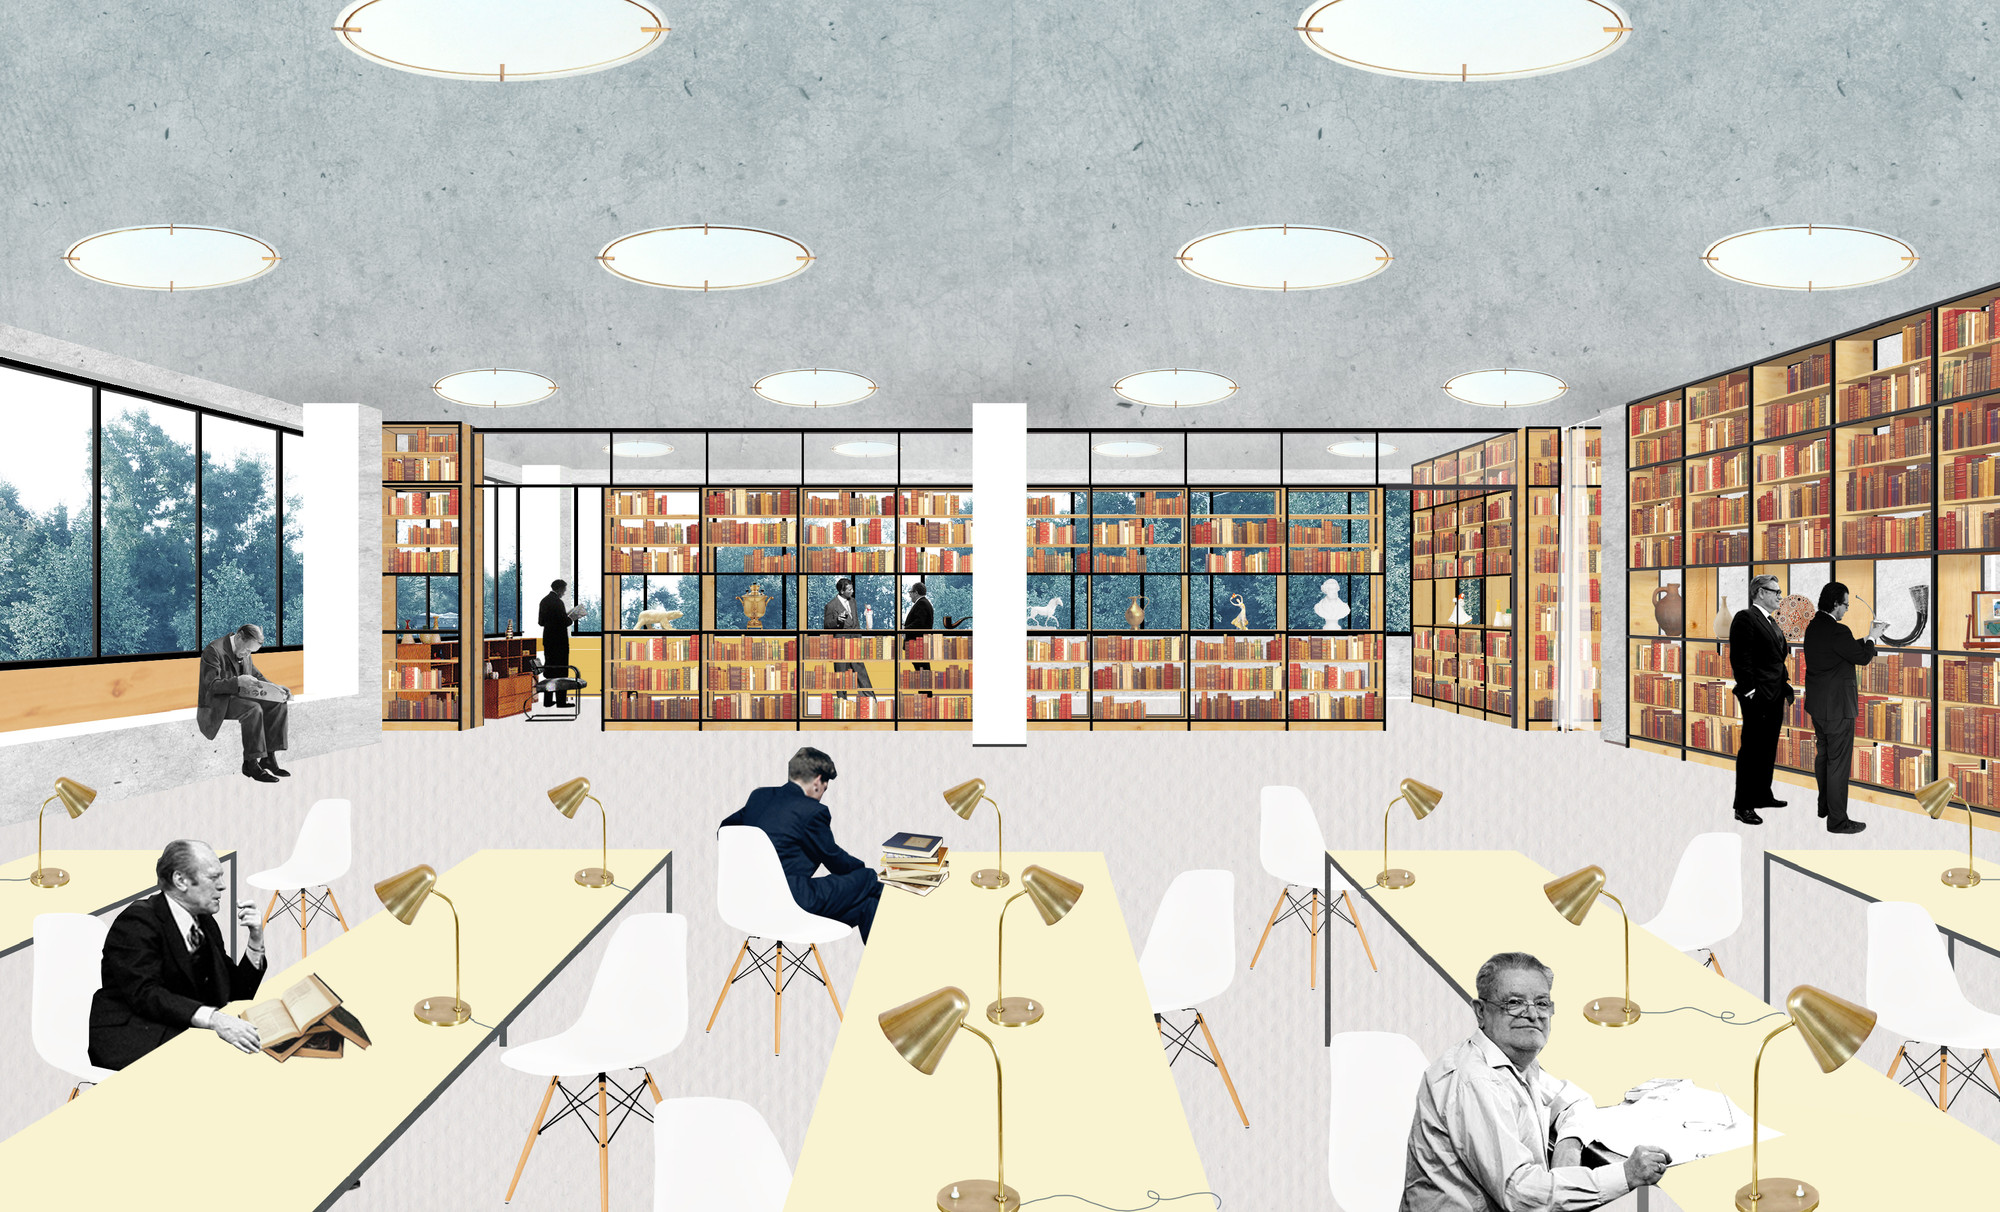 Reimagining 448 Local Libraries in Moscow, One Space at a Time, Interior Collage - #185. Image © SVESMI